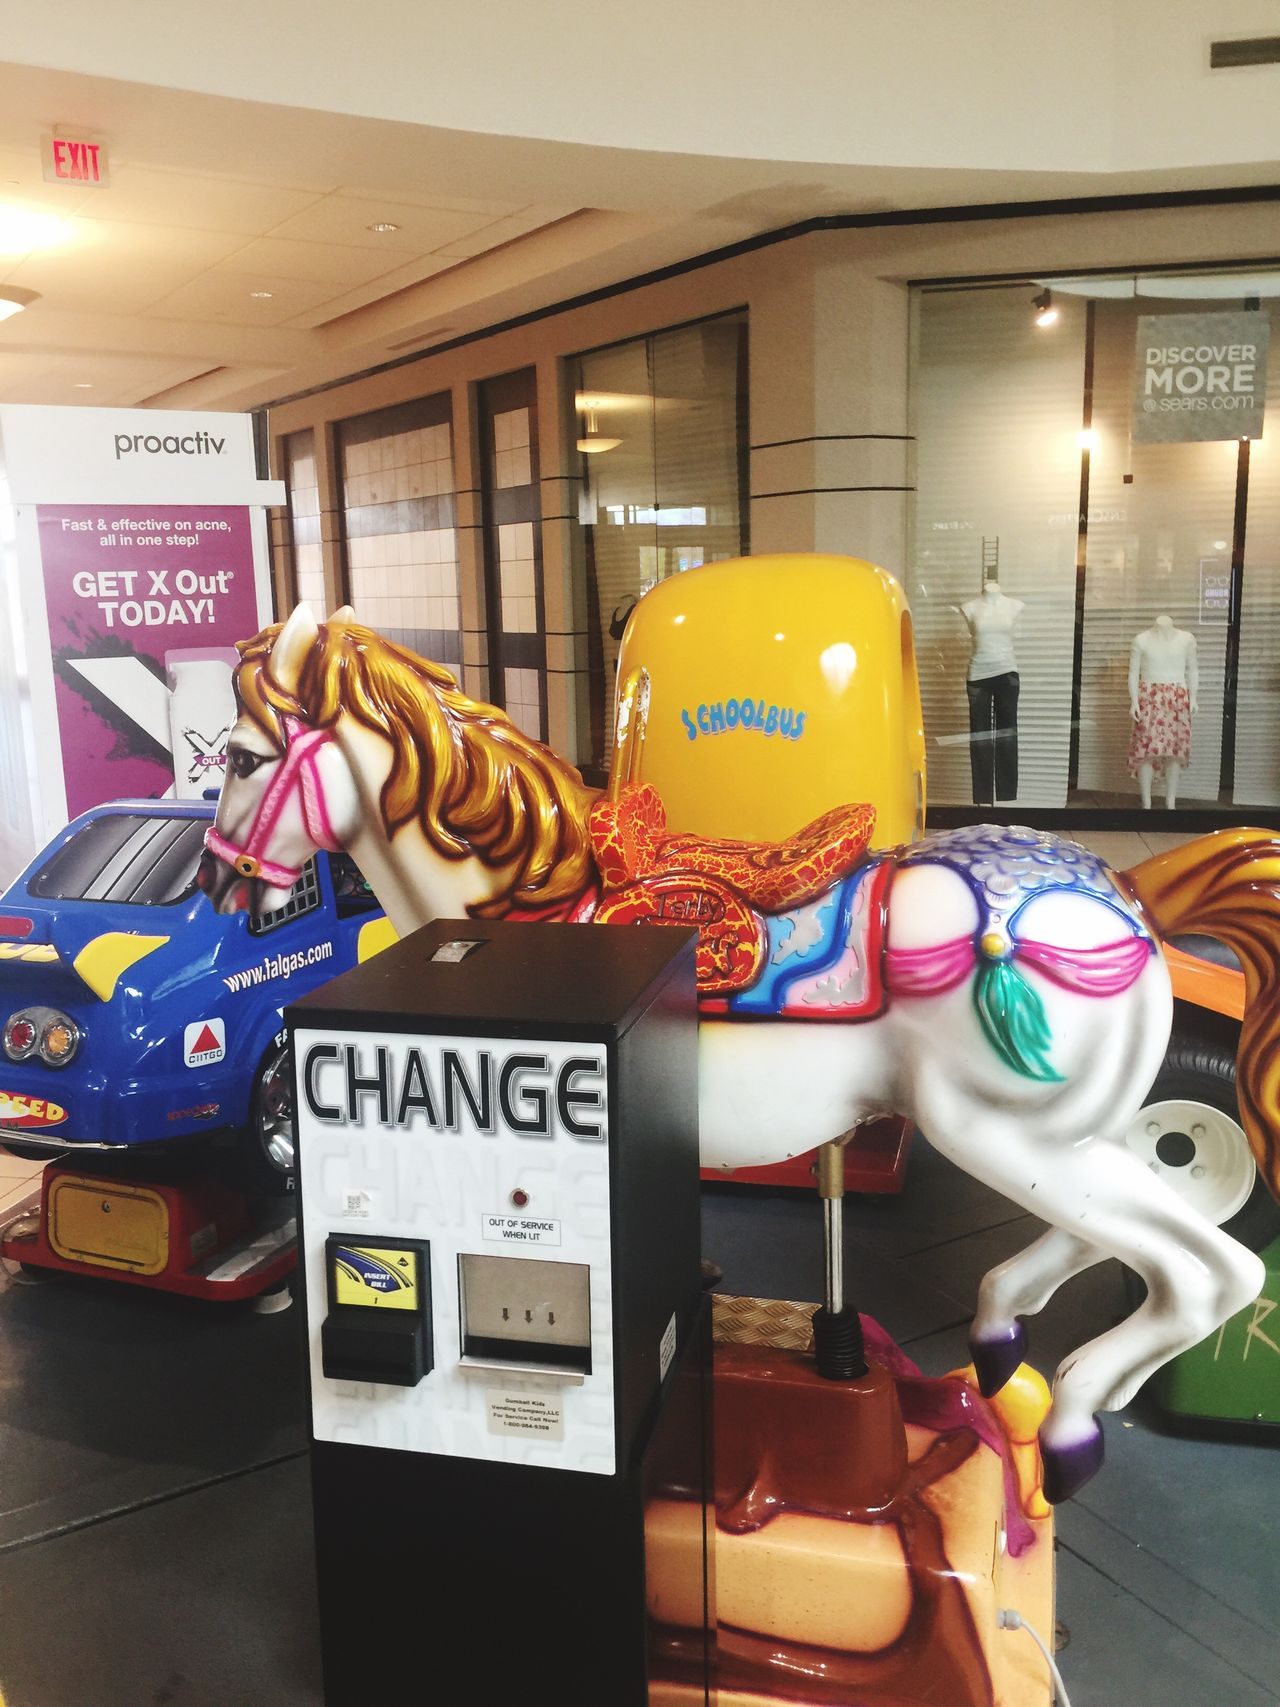 Play area the horse in a mall No People Indoors  Day Multi Colored Text Mall Coin Operated Coin Machine Play Area